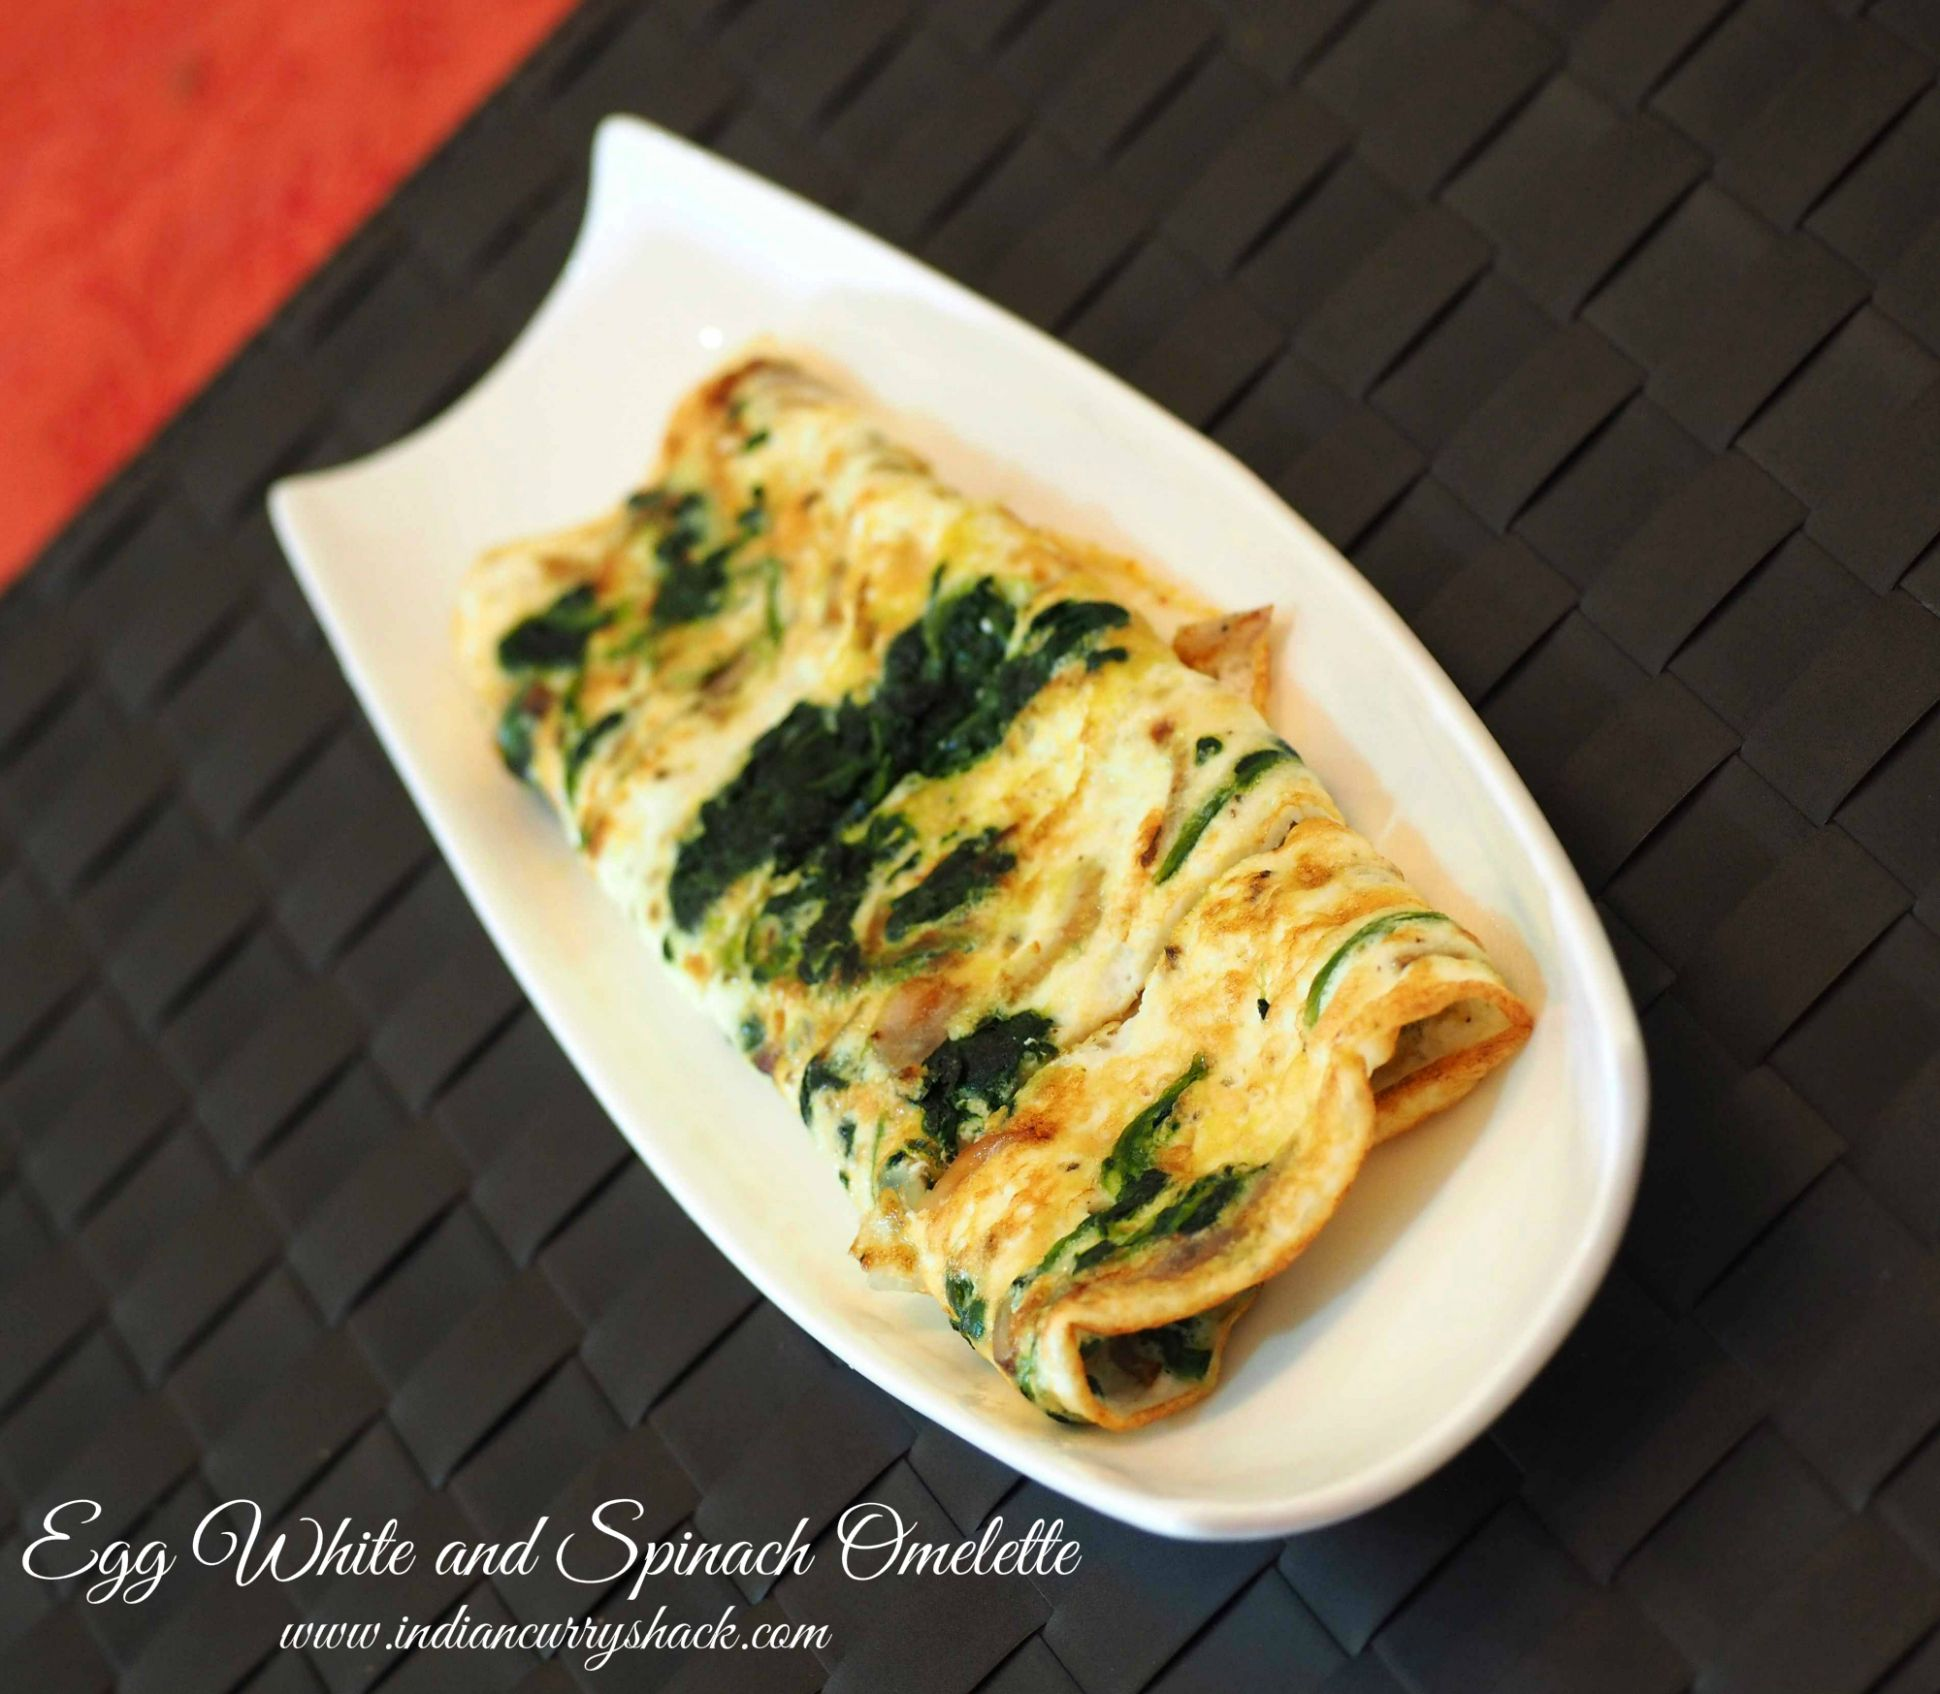 Egg White and Spinach Omelette – Indian Curry Shack By Anugya - Recipes Egg White Omelette